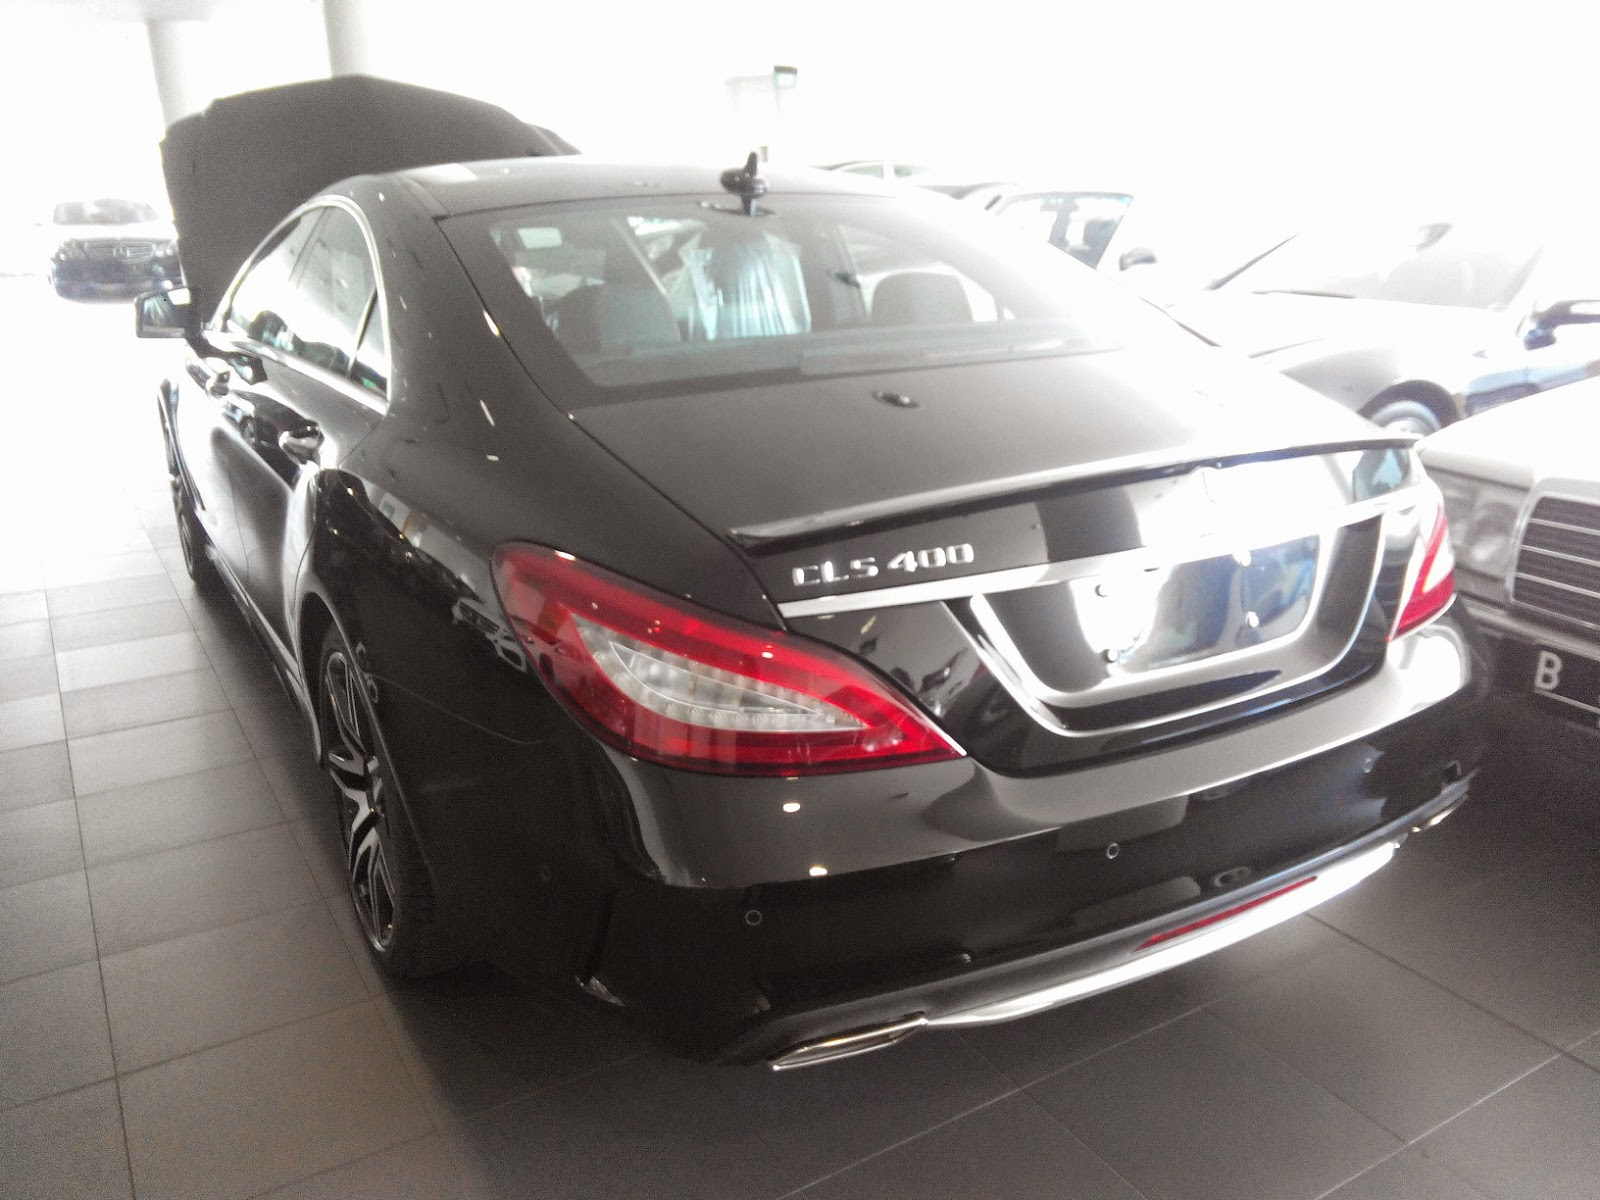 2015 New Mercedes Benz CLS 400 AMG Dynamic In Depth Review ...